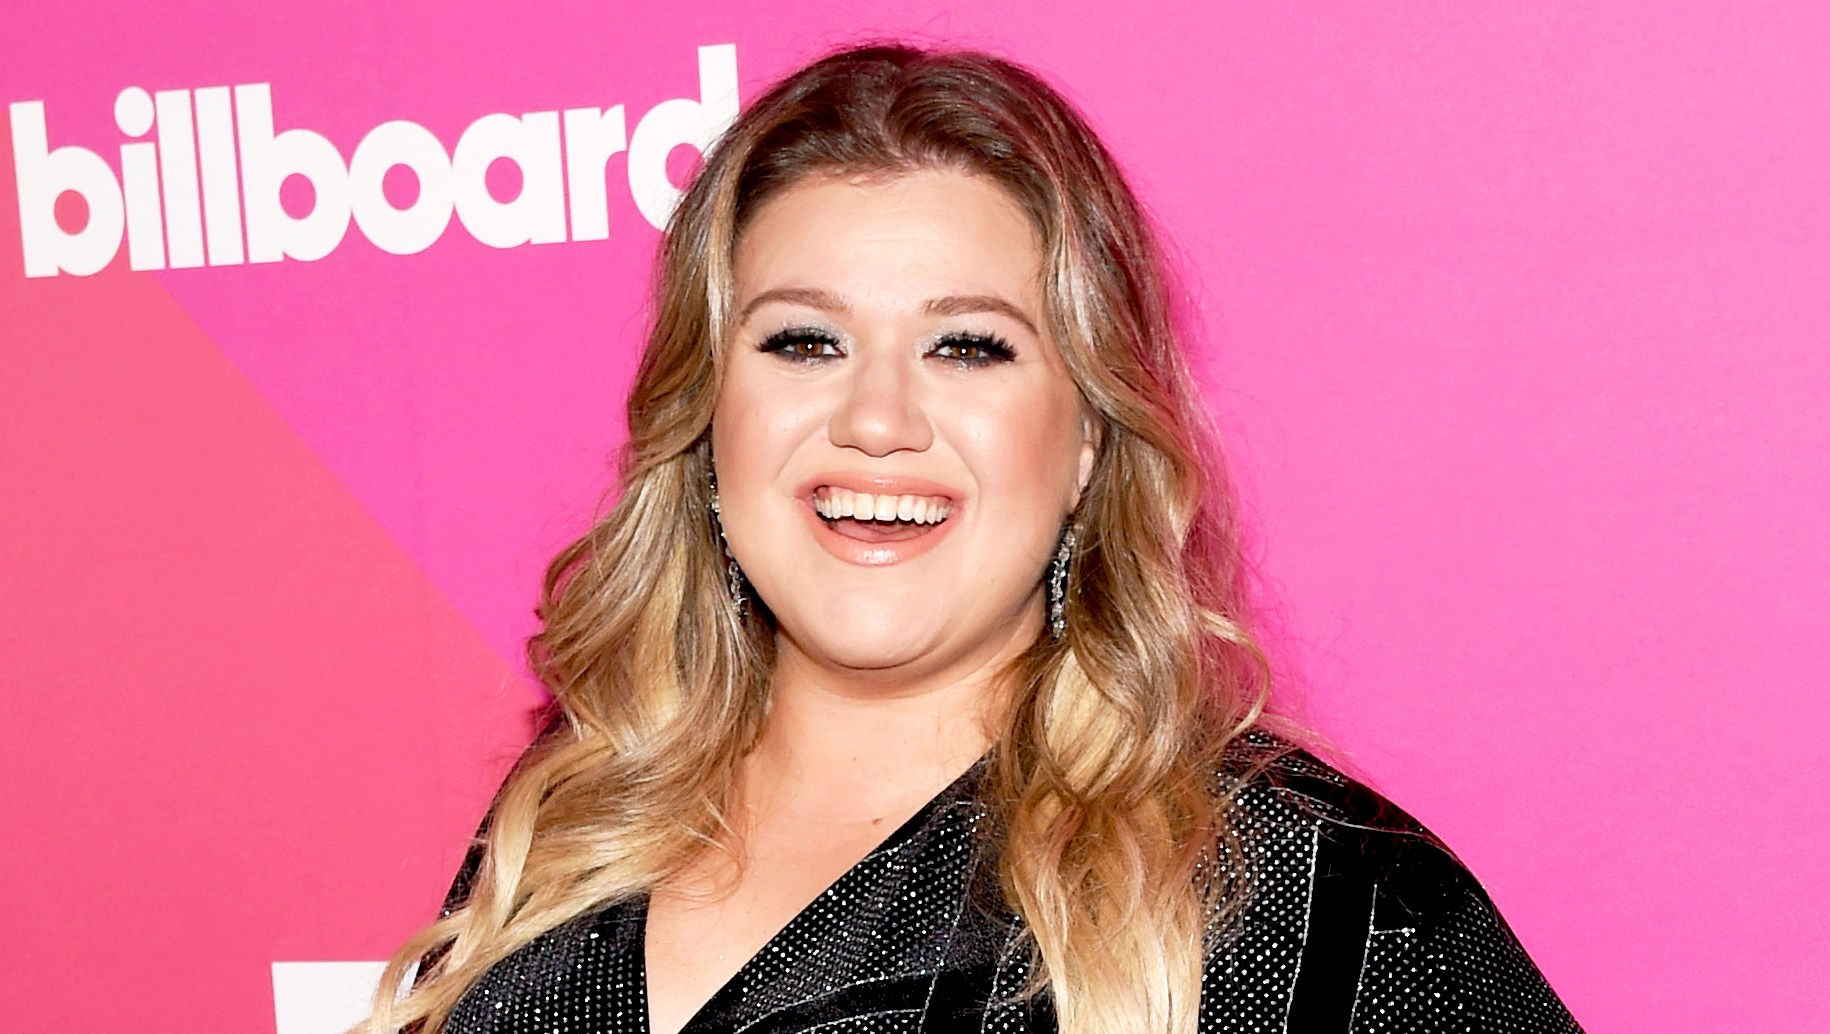 Kelly Clarkson attends Billboard Women in Music 2017 at The Ray Dolby Ballroom at Hollywood & Highland Center in Hollywood, California.